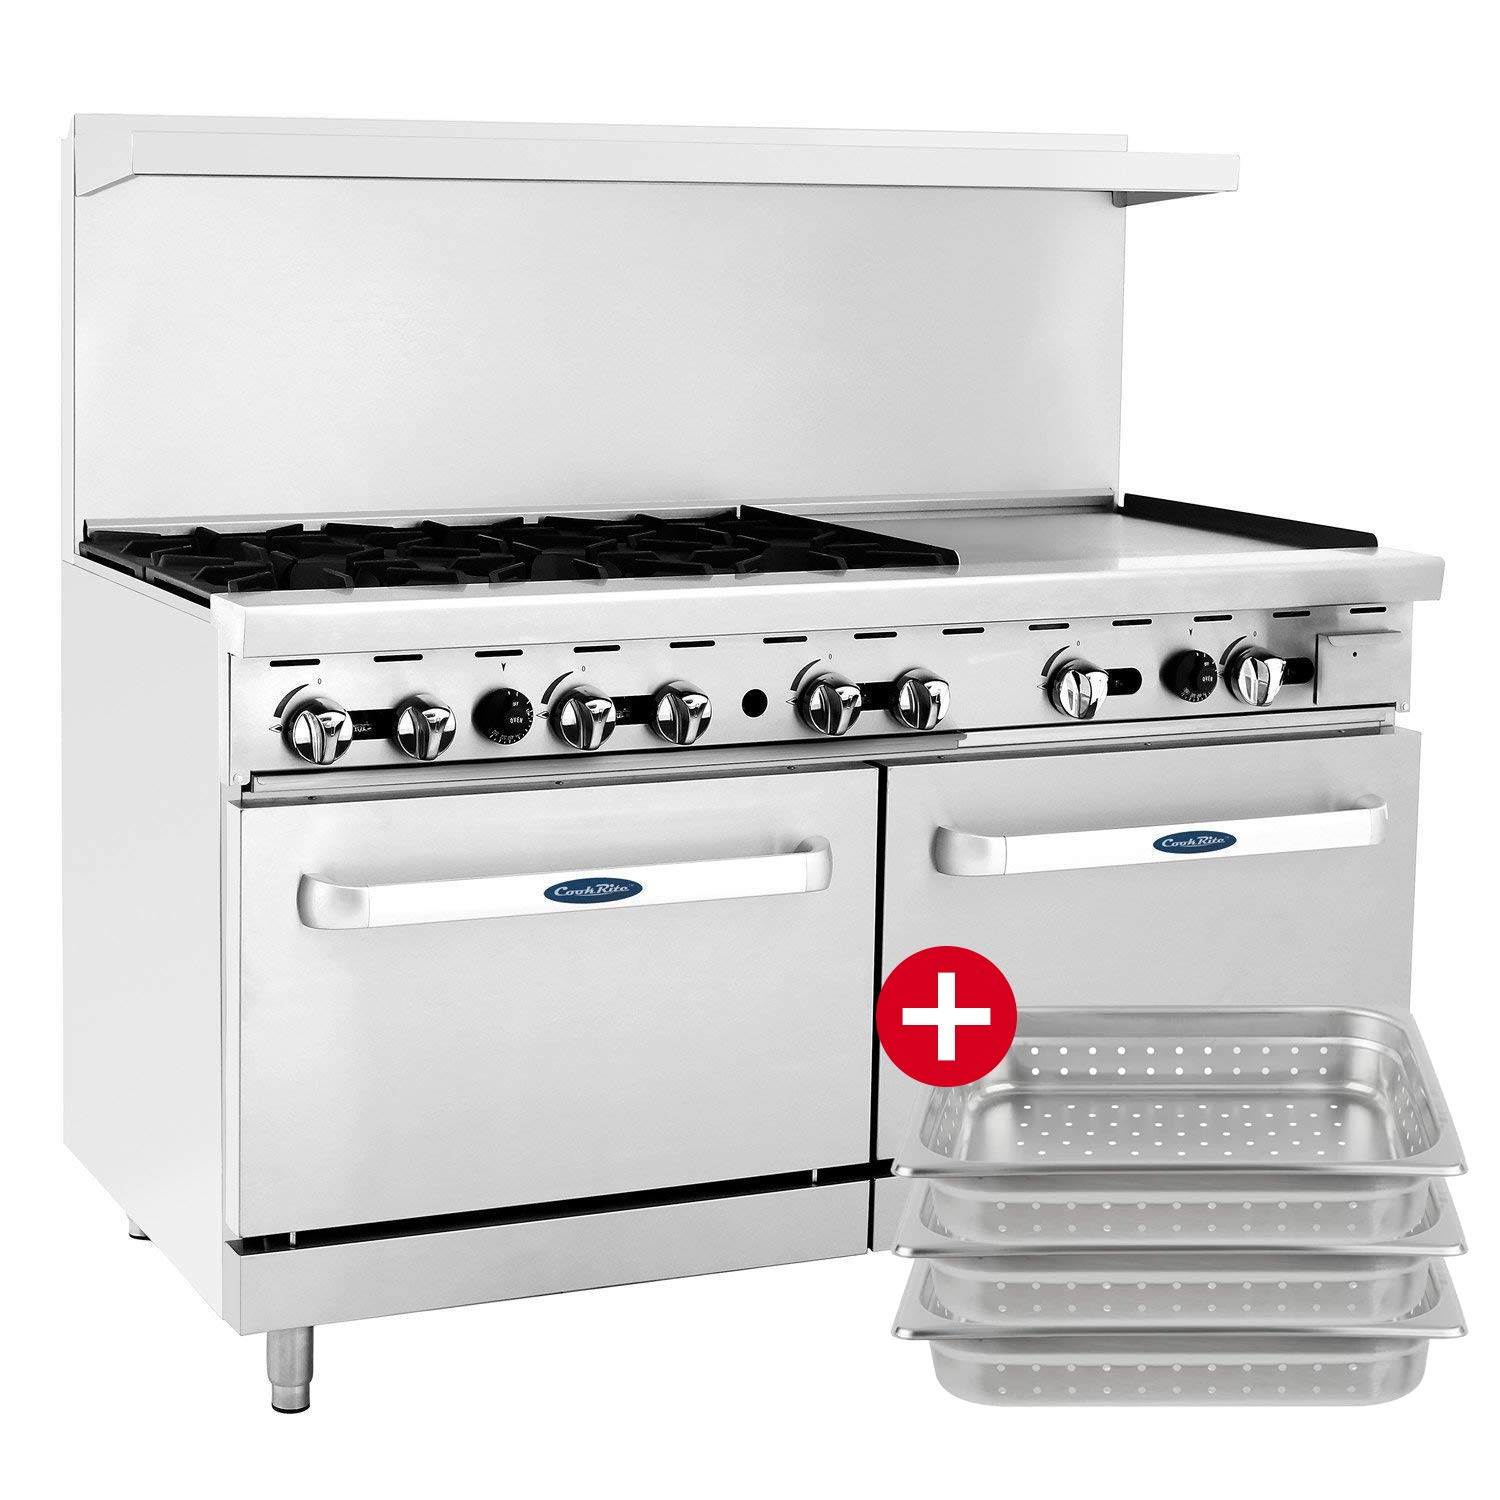 "ATOSA US Commercial CookRite Natural Gas Range 6 Burner Hot Plate with 24"" Manual Griddle 2 Standard Ovens 60"